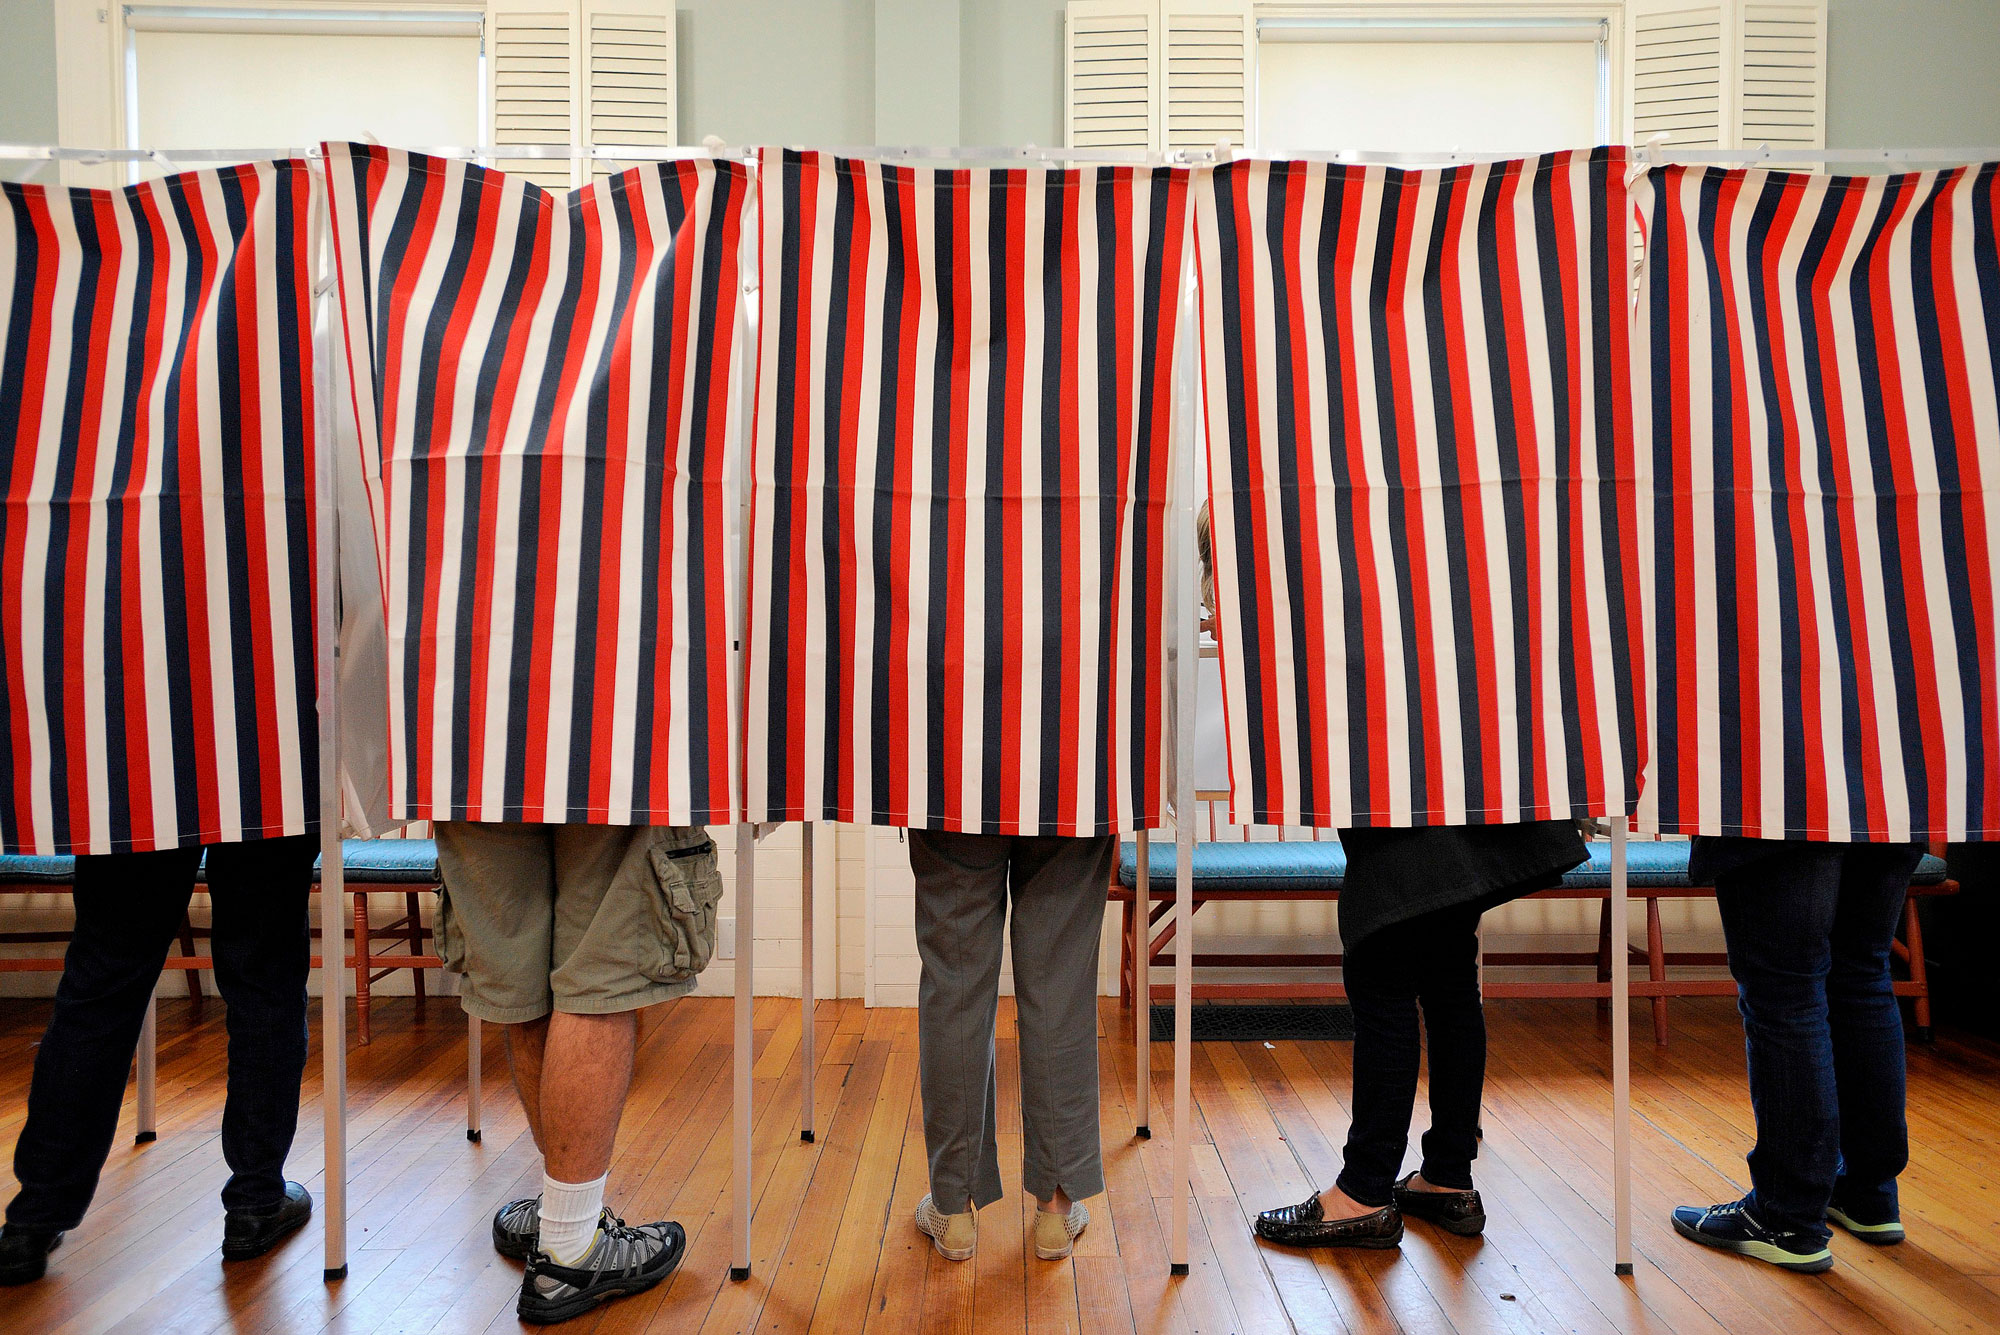 Voters stand behind red, white, and blue striped separators